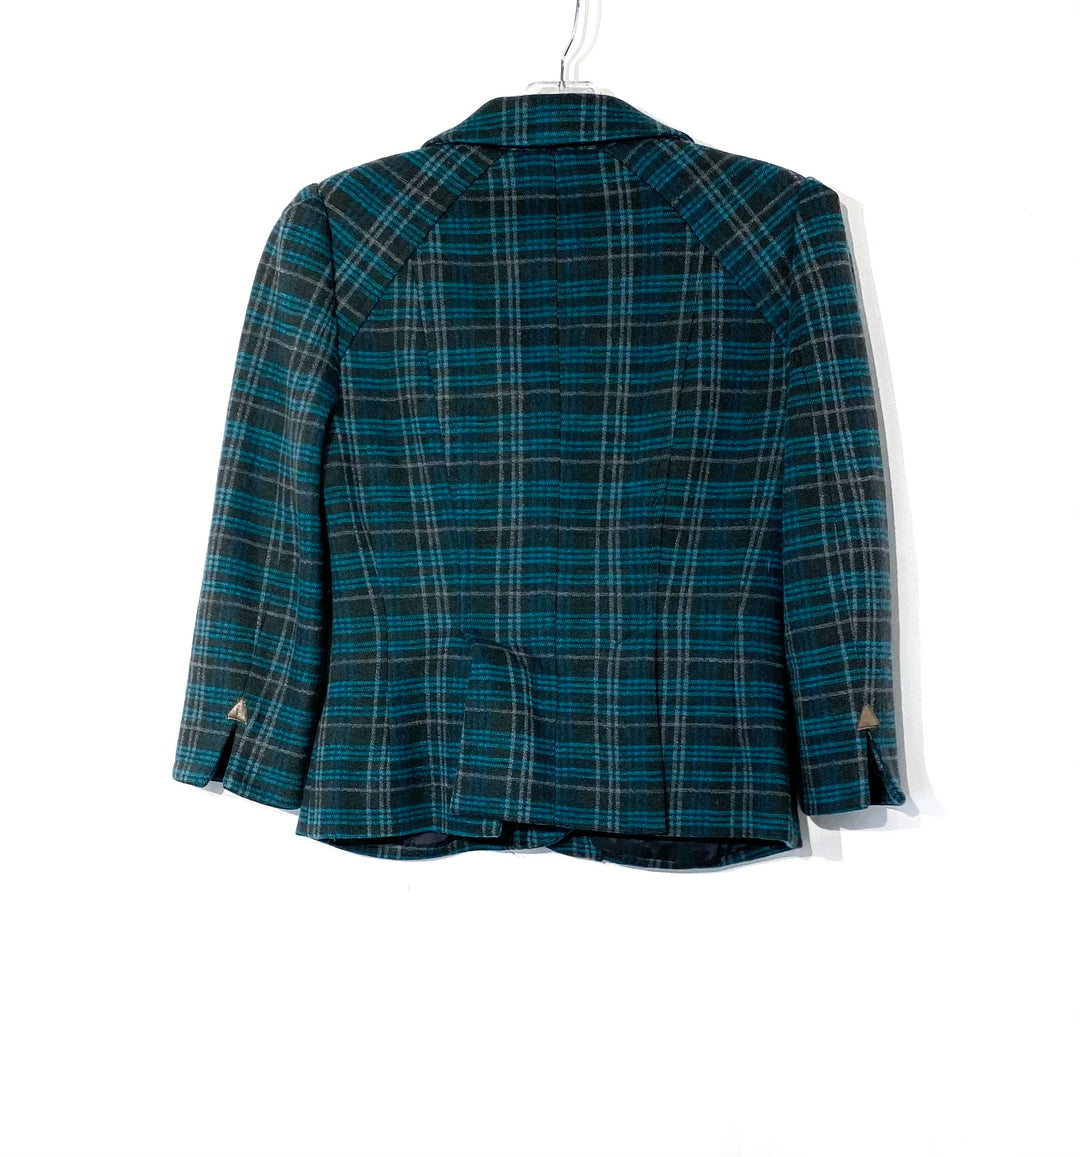 "Photo #1 - BRAND: NANETTE LEPORE <BR>STYLE: BLAZER JACKET <BR>COLOR: PLAID <BR>SIZE: S /4<BR>SKU: 262-26275-72008<BR>100% WOOL<BR>SHOULDER SEAM TO WRIST 18""<BR>PIT TO HEM 11.5""<BR>PIT TO PIT 16.5"""